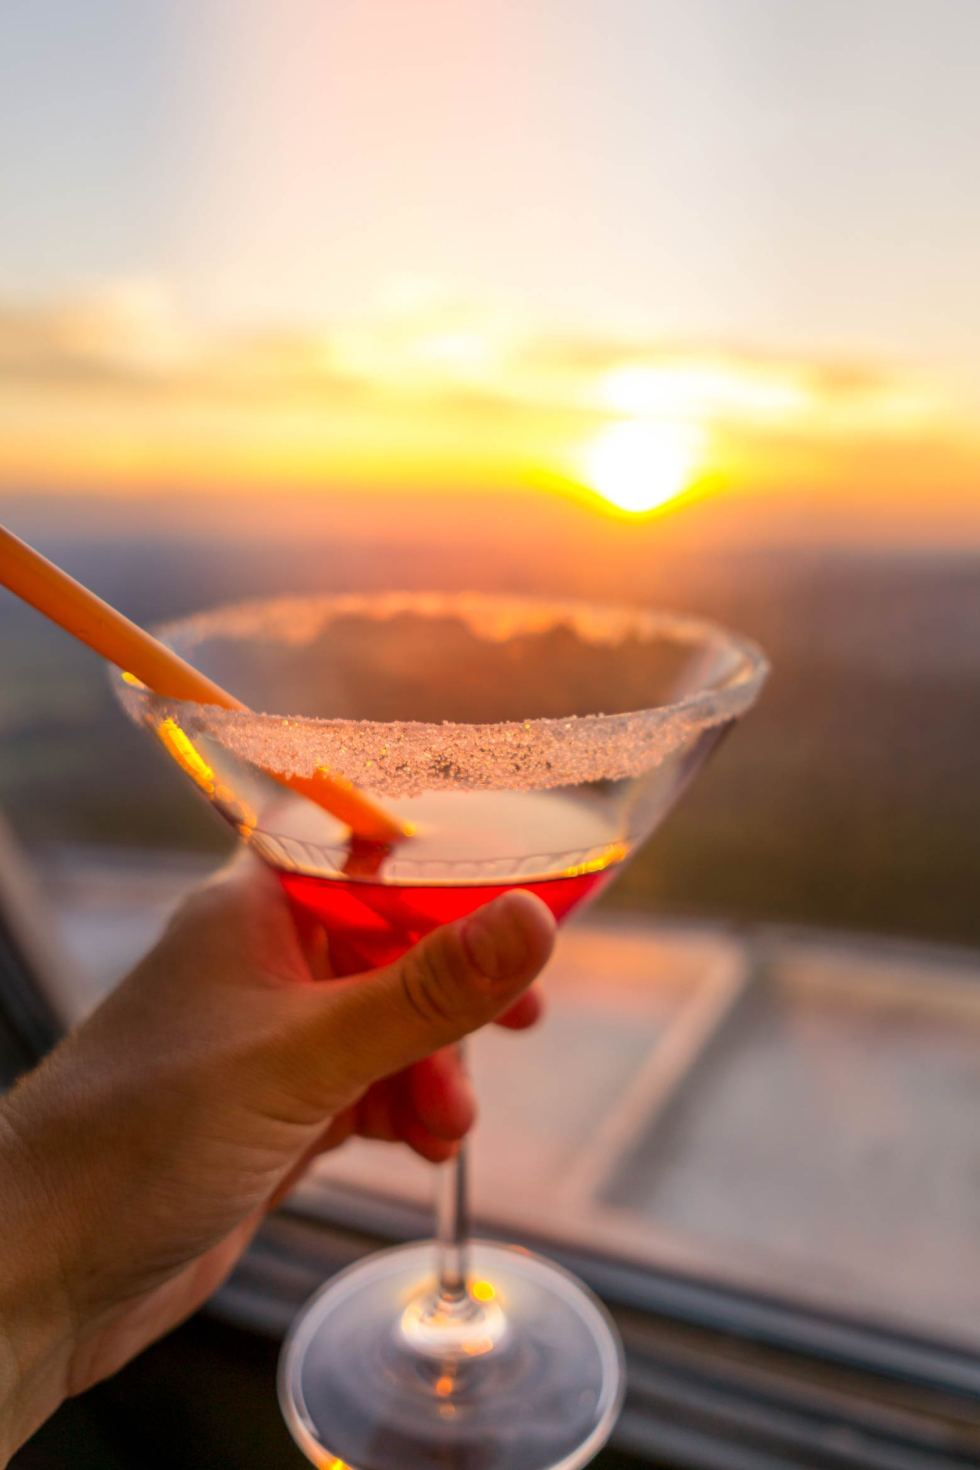 sunset view with a cocktail from the windows